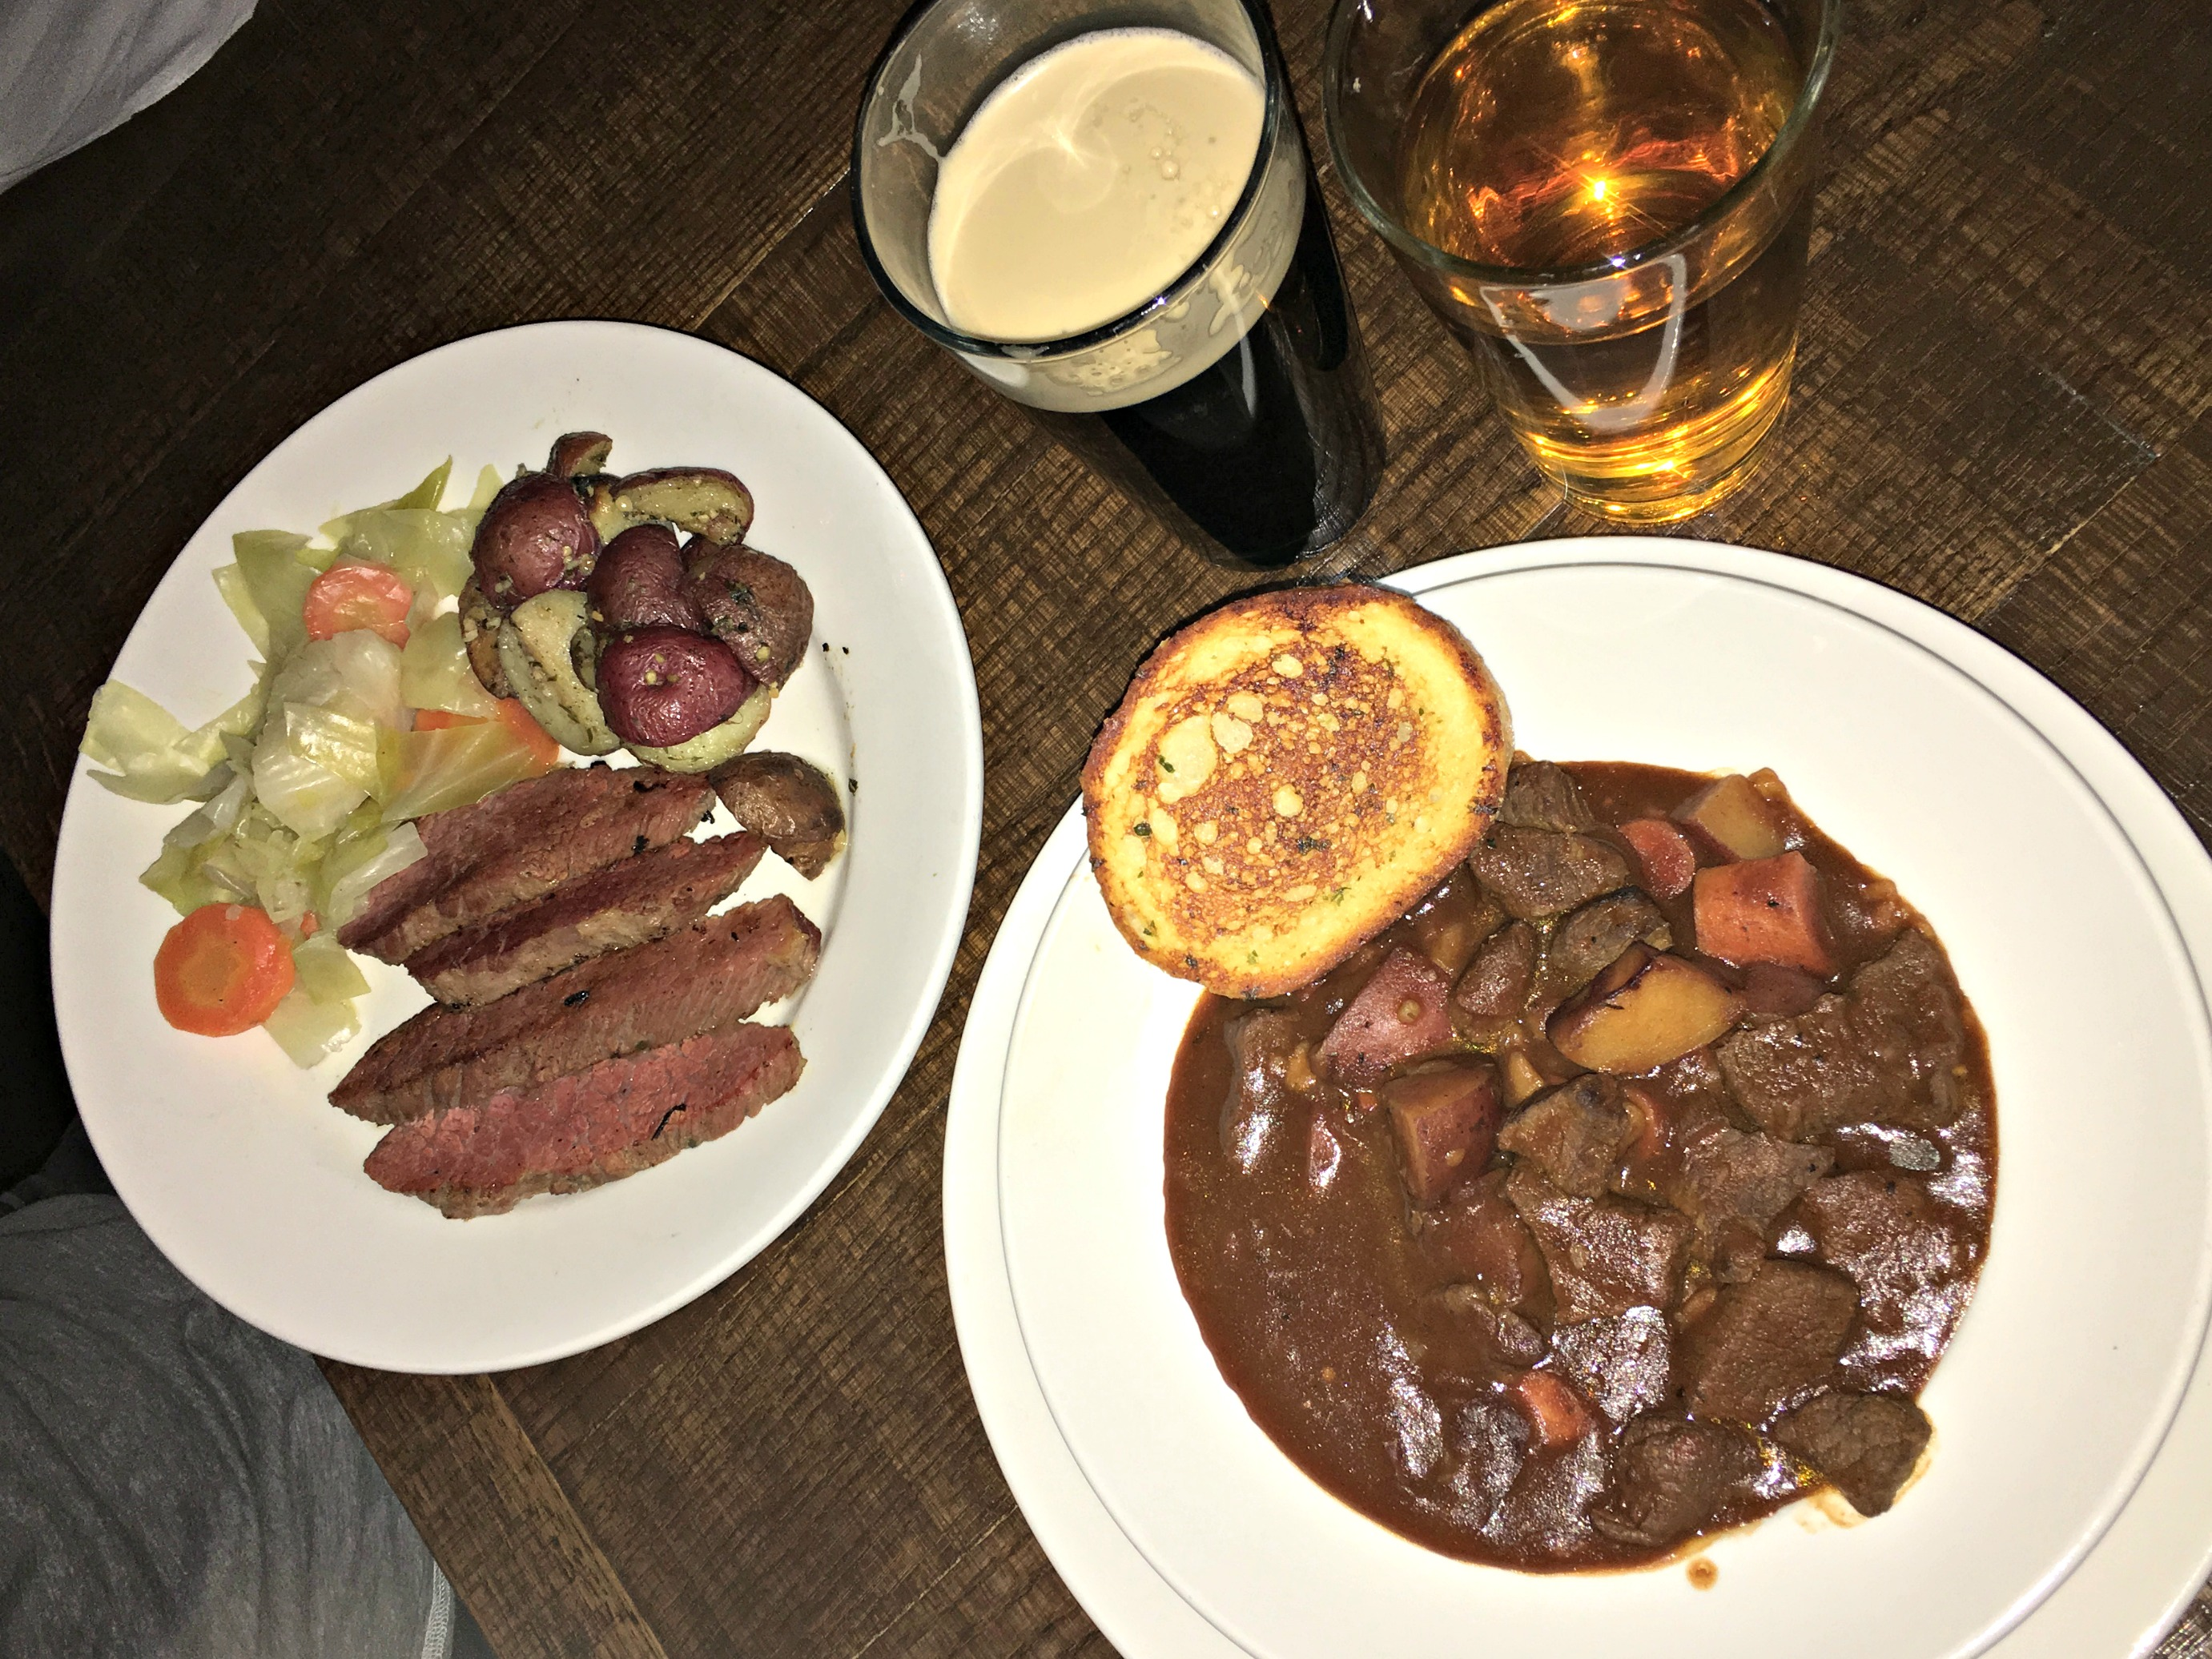 st patricks day food - corned beef and cabbage and beef stew